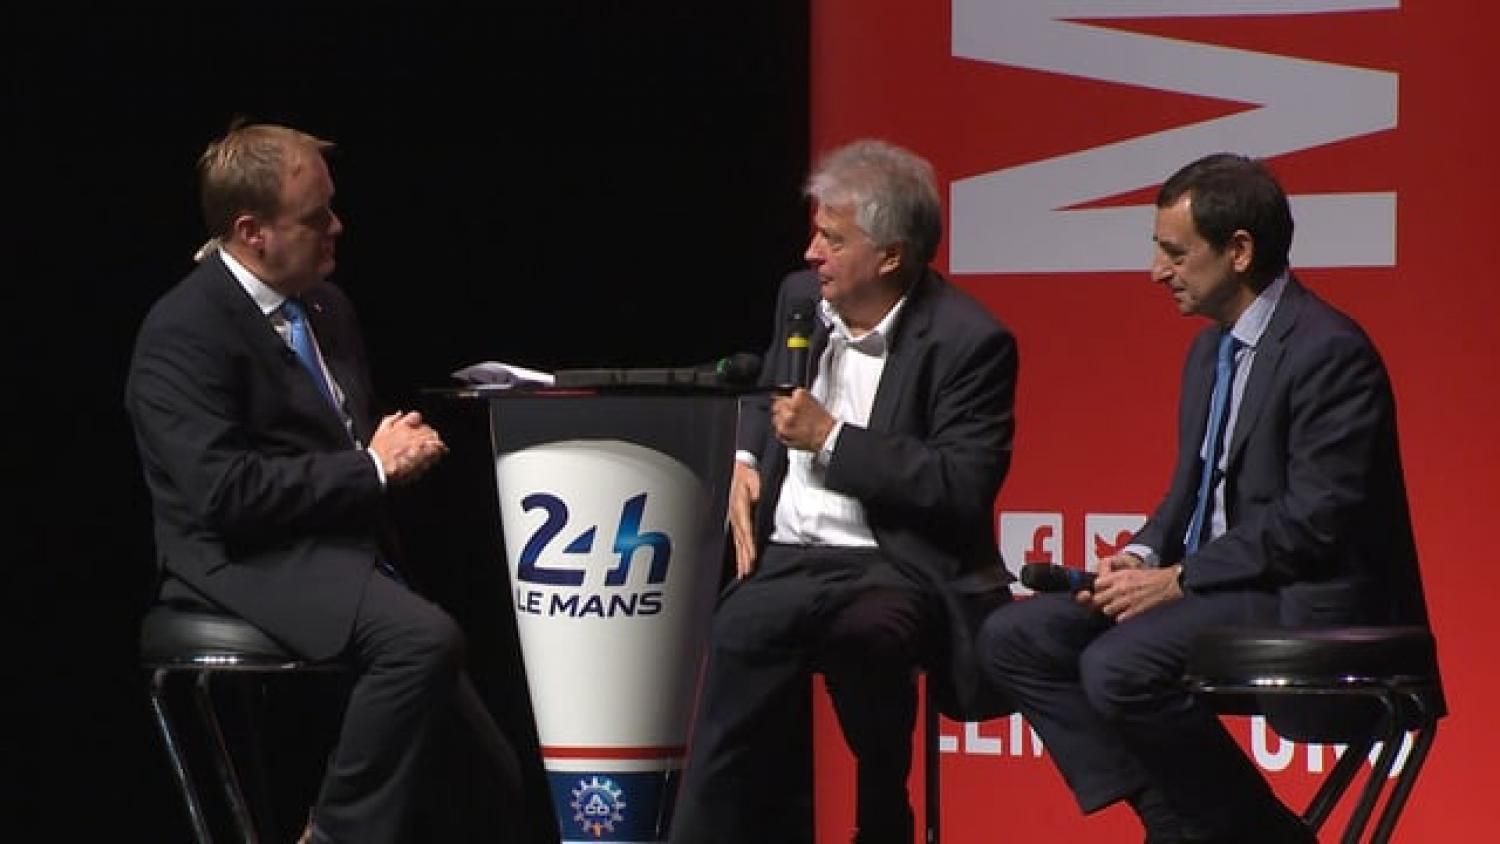 Bernard Ollivier (Alpine) talks about the new road car and Le Mans (video)